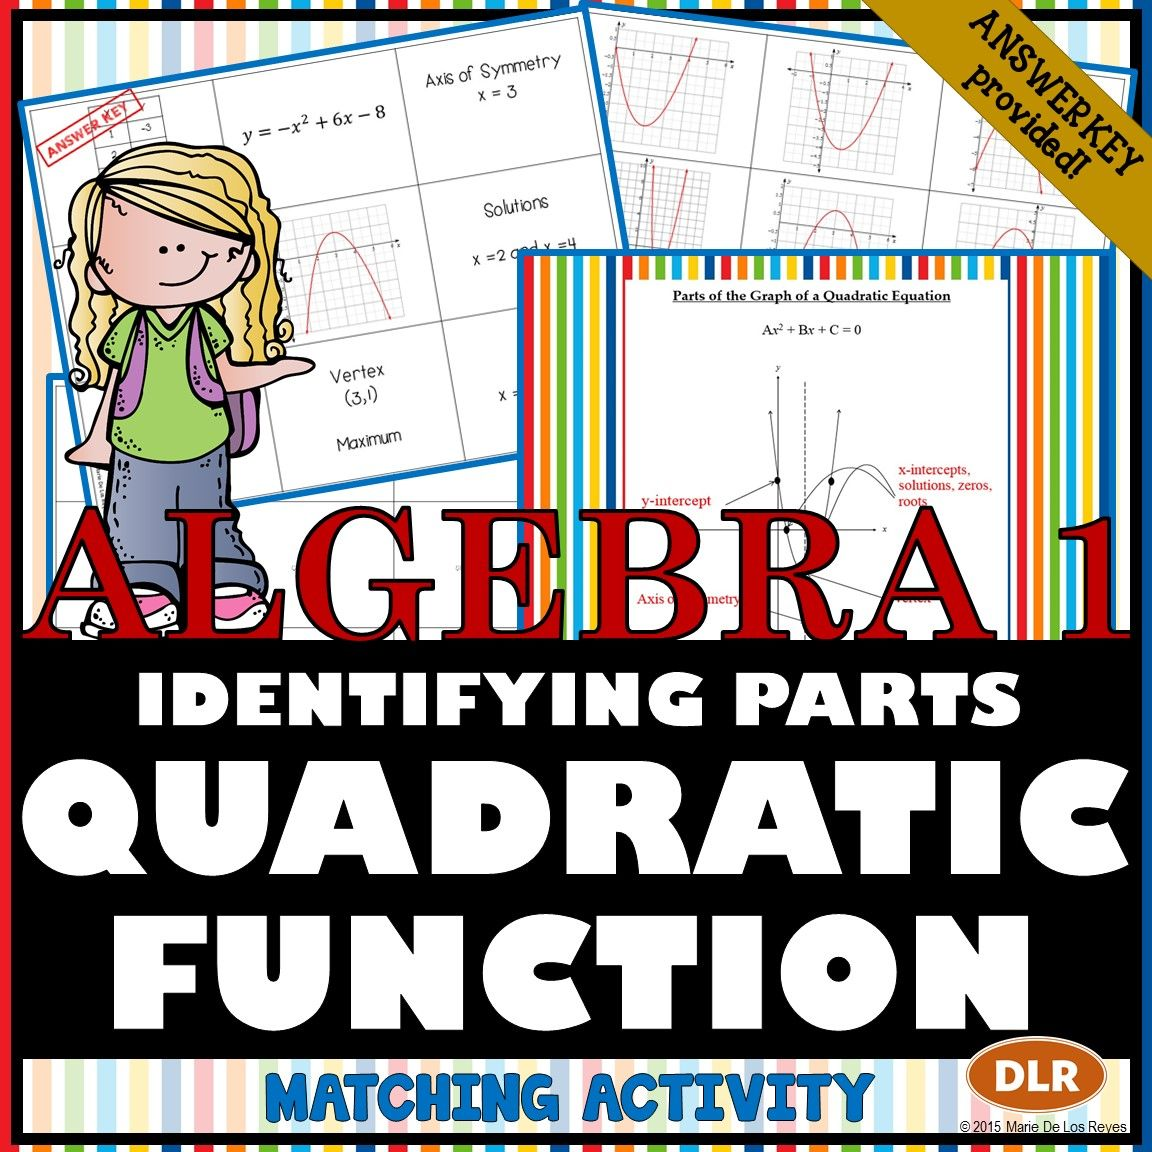 Identifying The Parts Of The Quadratic Equation Matching Activity Neo Coloring